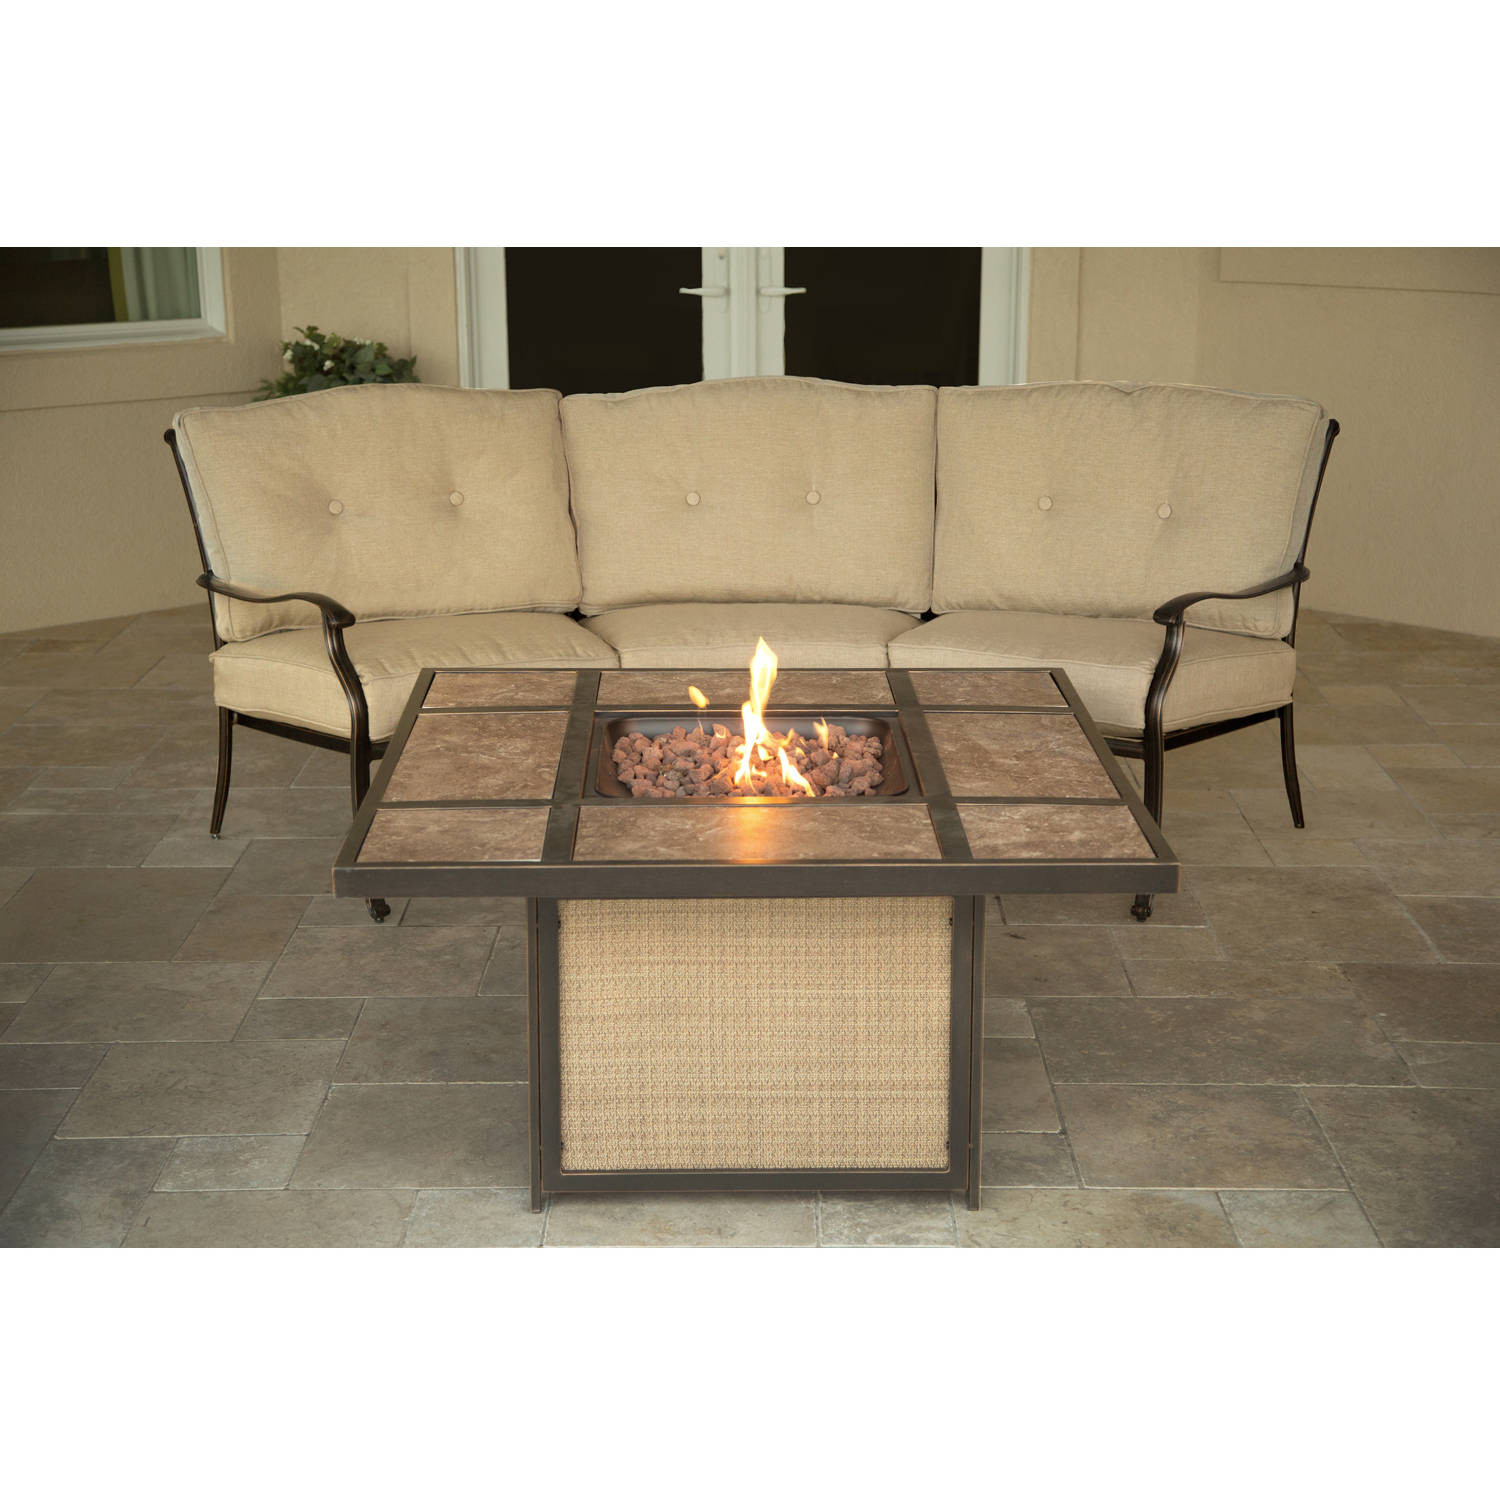 Hanover Outdoor Traditions 2-Piece Tile-Top Firepit Lounge Set, Natural Oat Bronze by Firepits